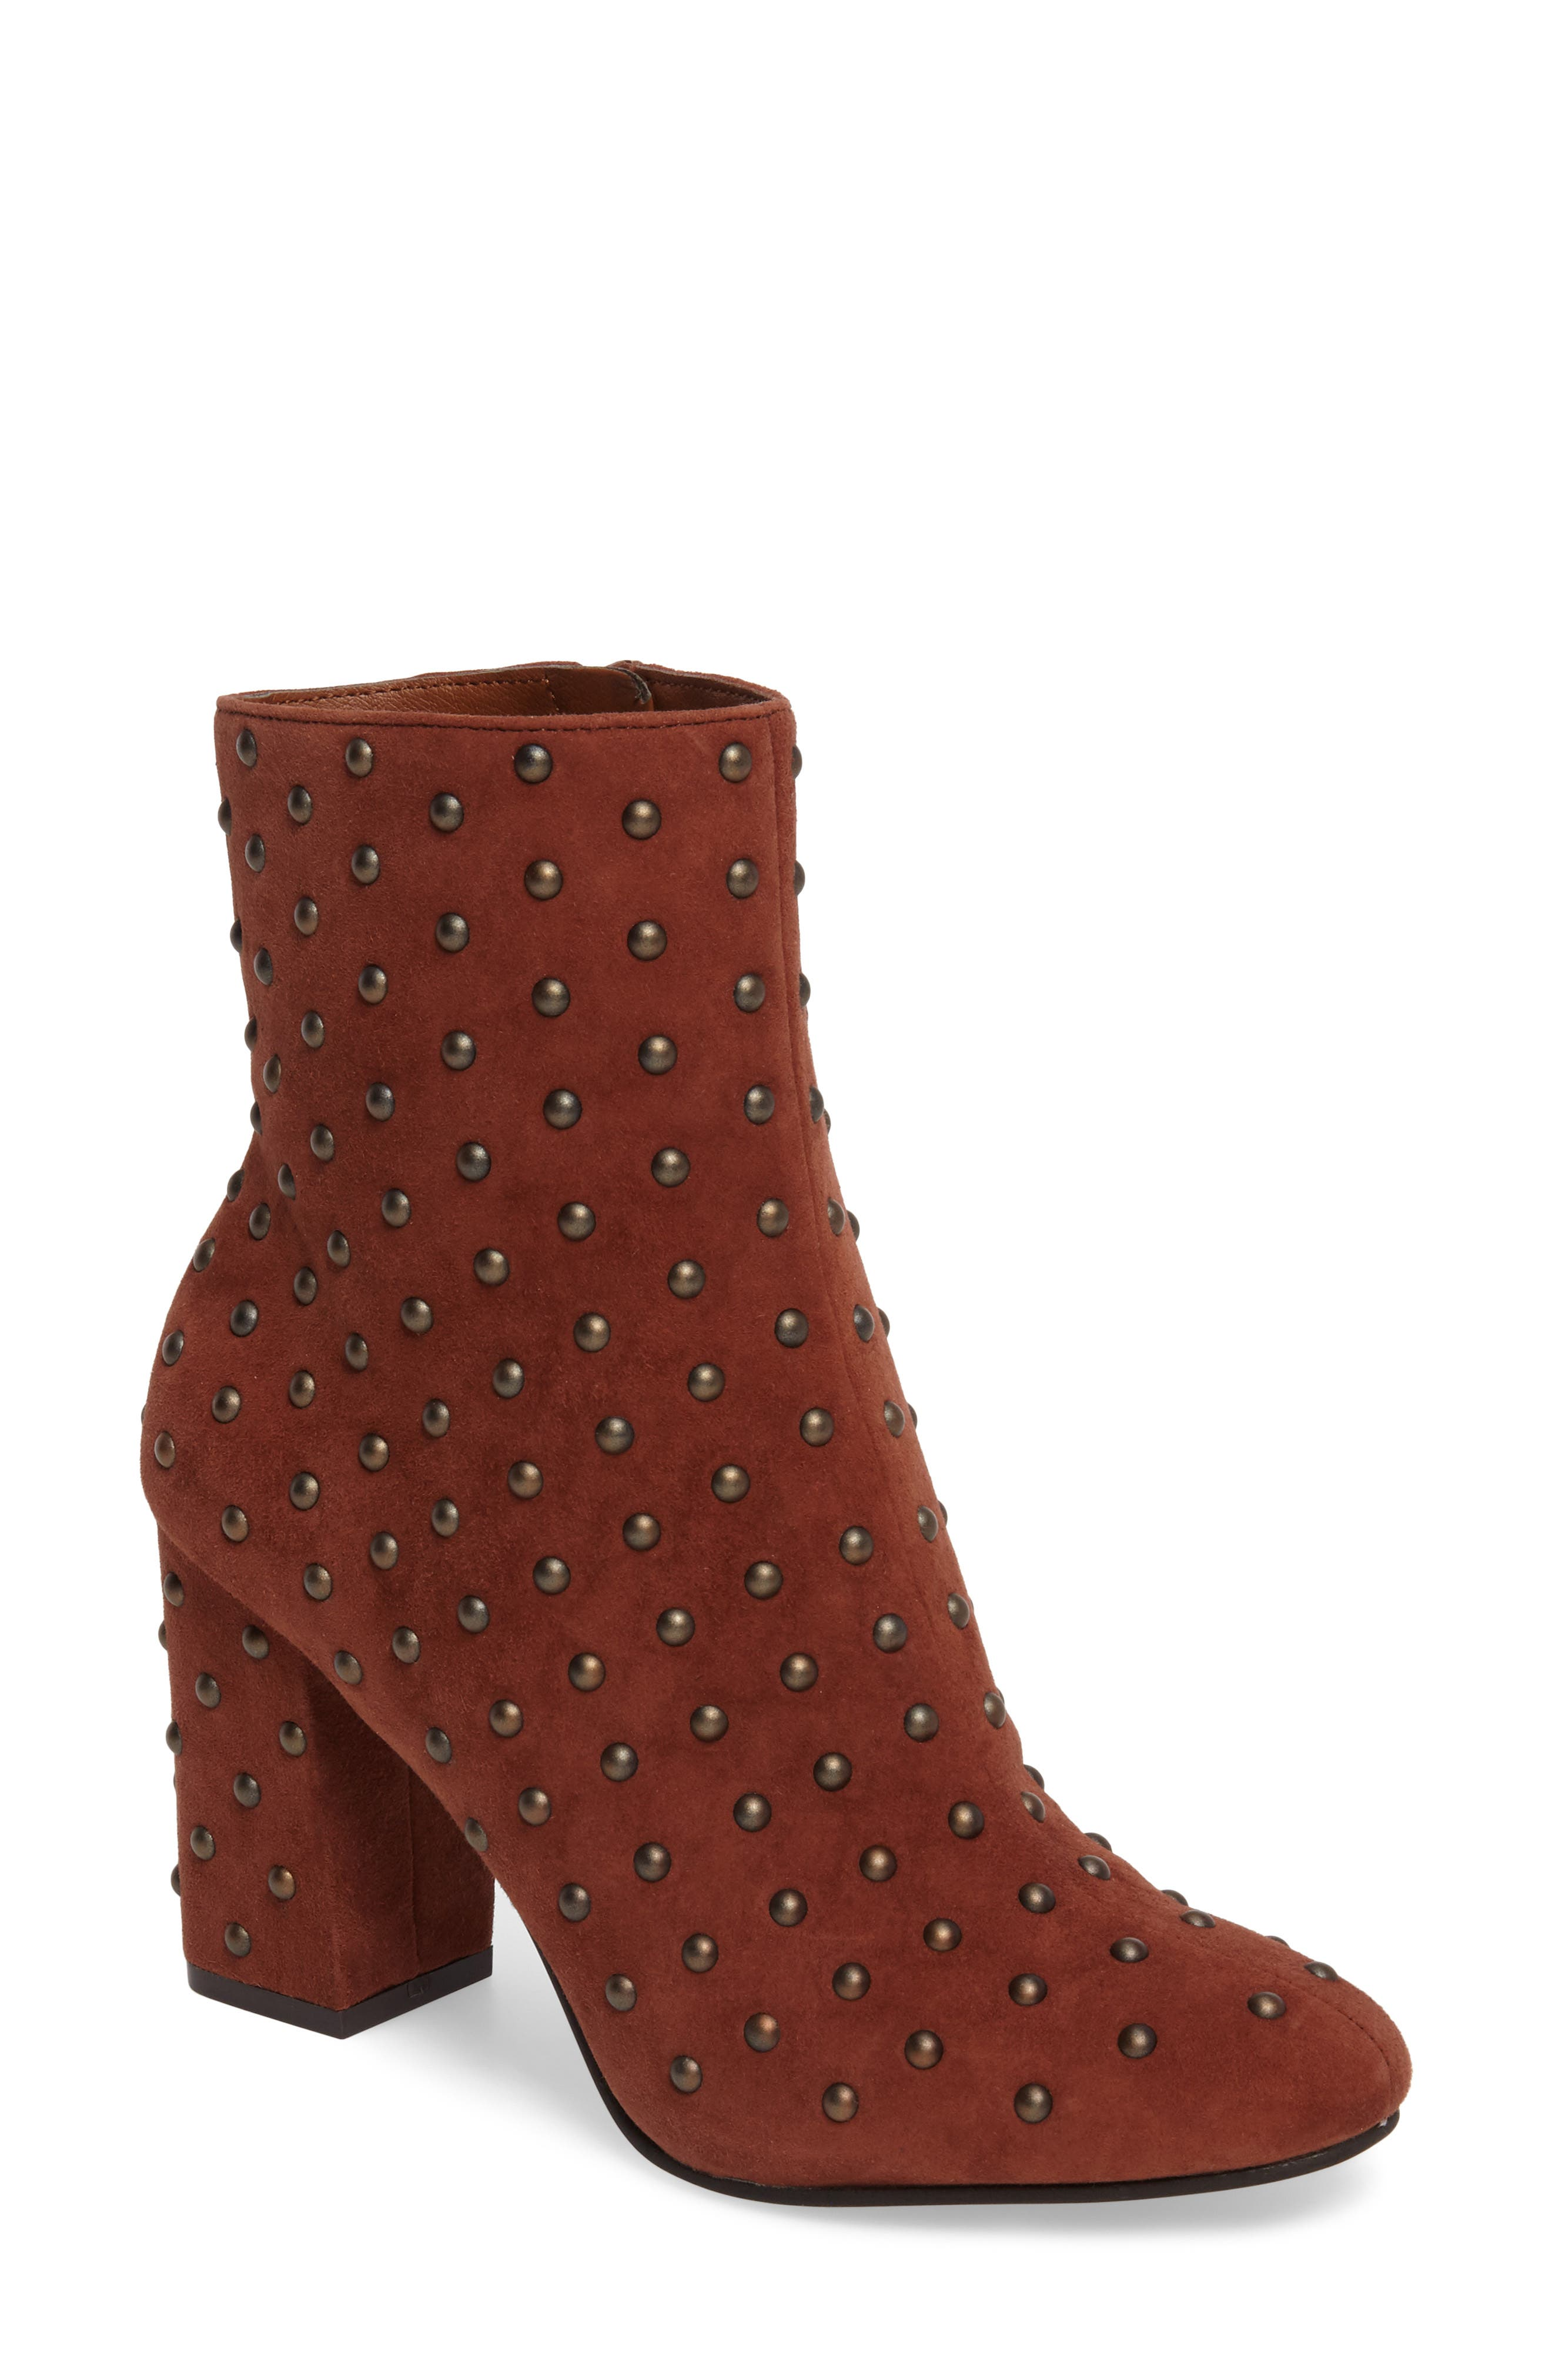 Main Image - Lucky Brand Wesson II Studded Bootie (Women)